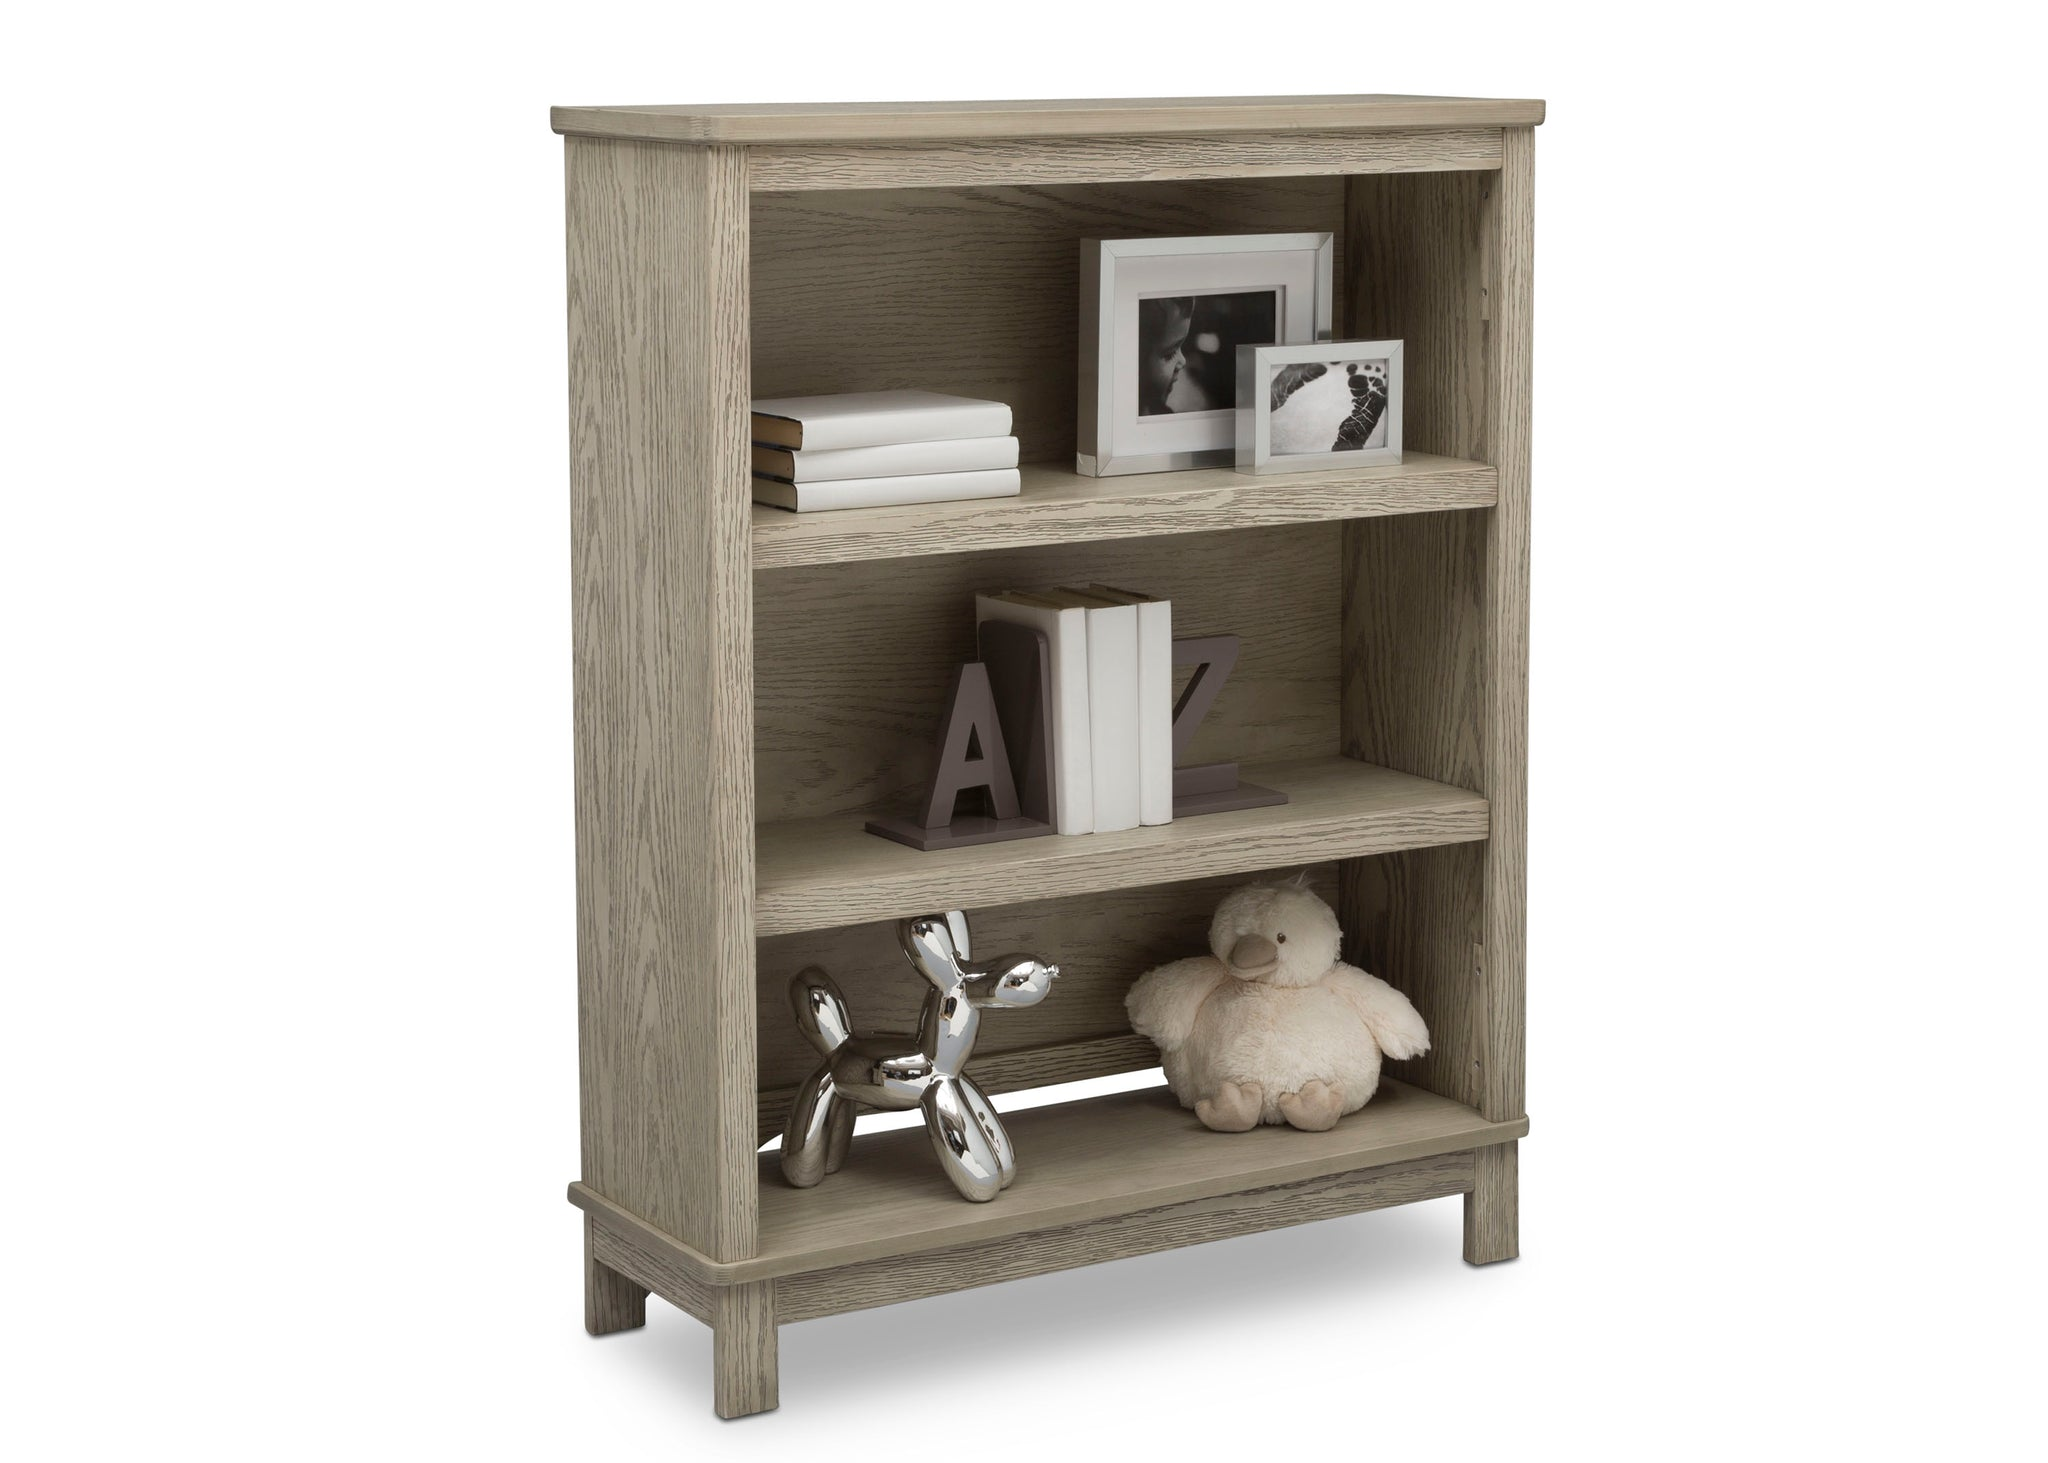 Delta Children Textured Limestone (1340) Farmhouse Bookcase/Hutch, Right Silo View with Props